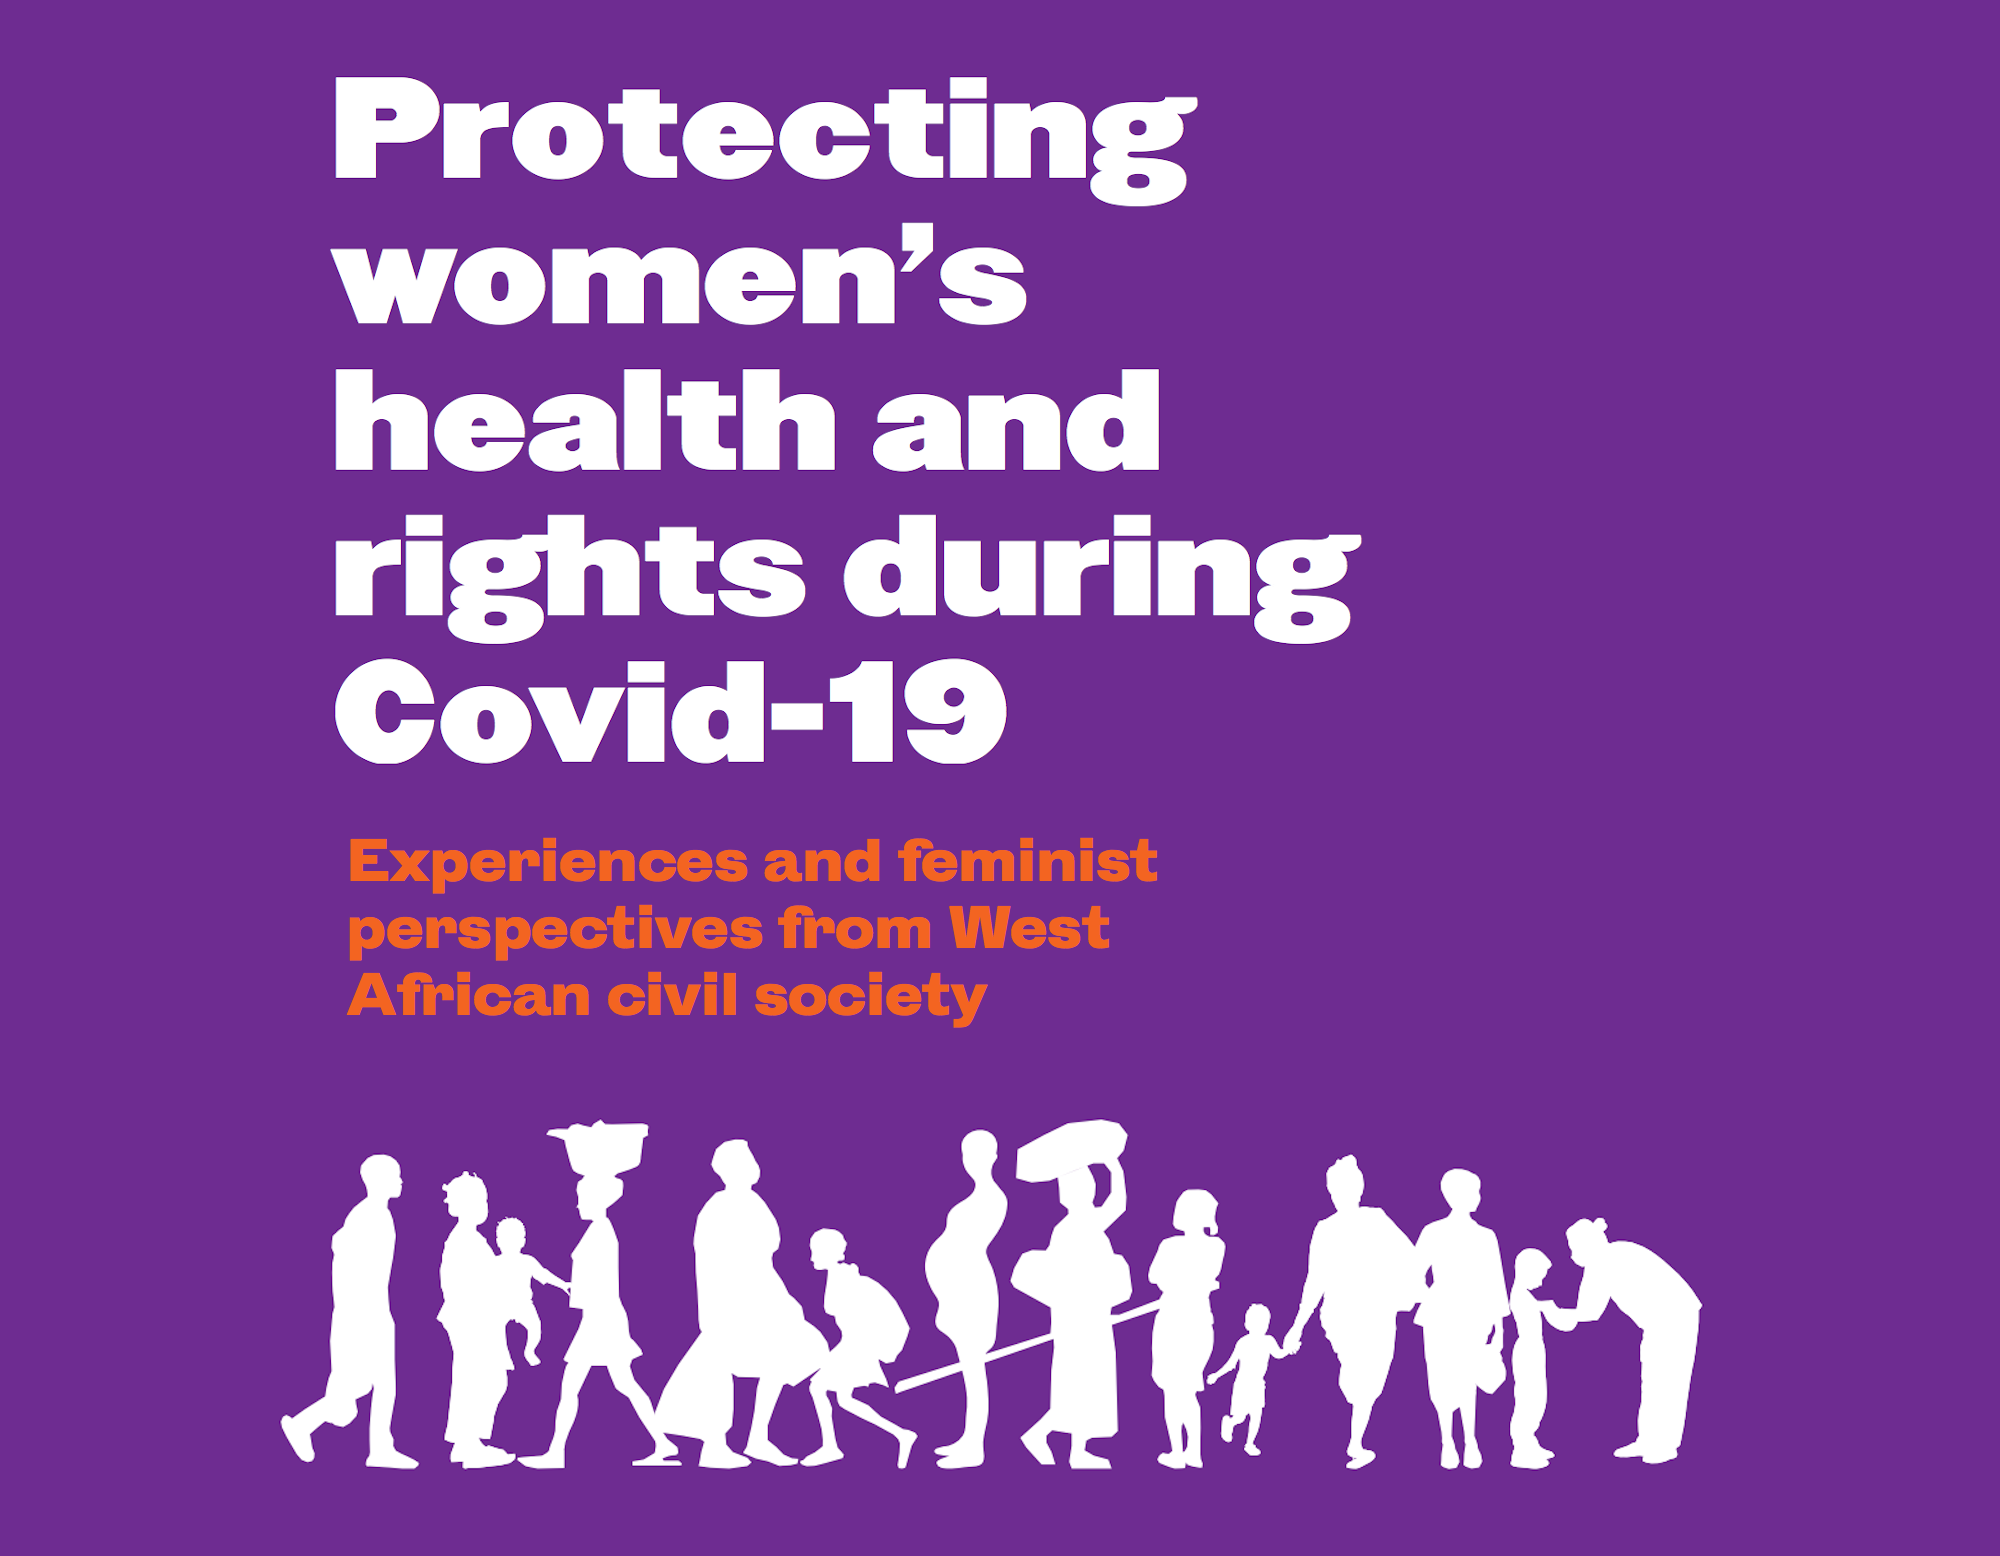 Protecting women's and girls health and rights during Covid-19